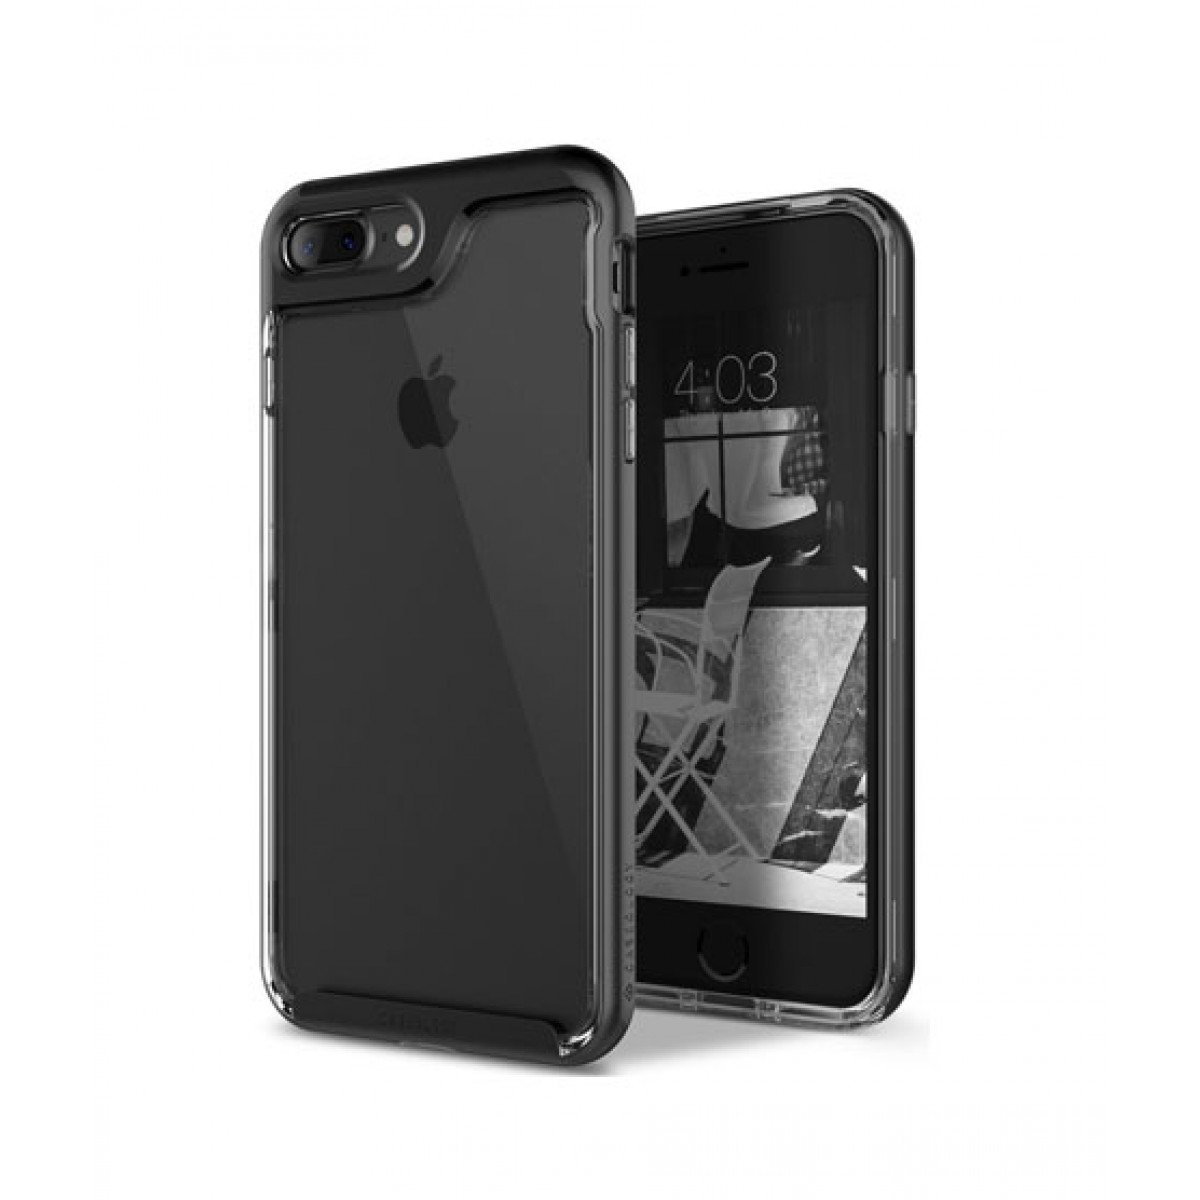 online retailer f2ca7 81a44 Caseology Skyfall Black Case For iPhone 8 Plus